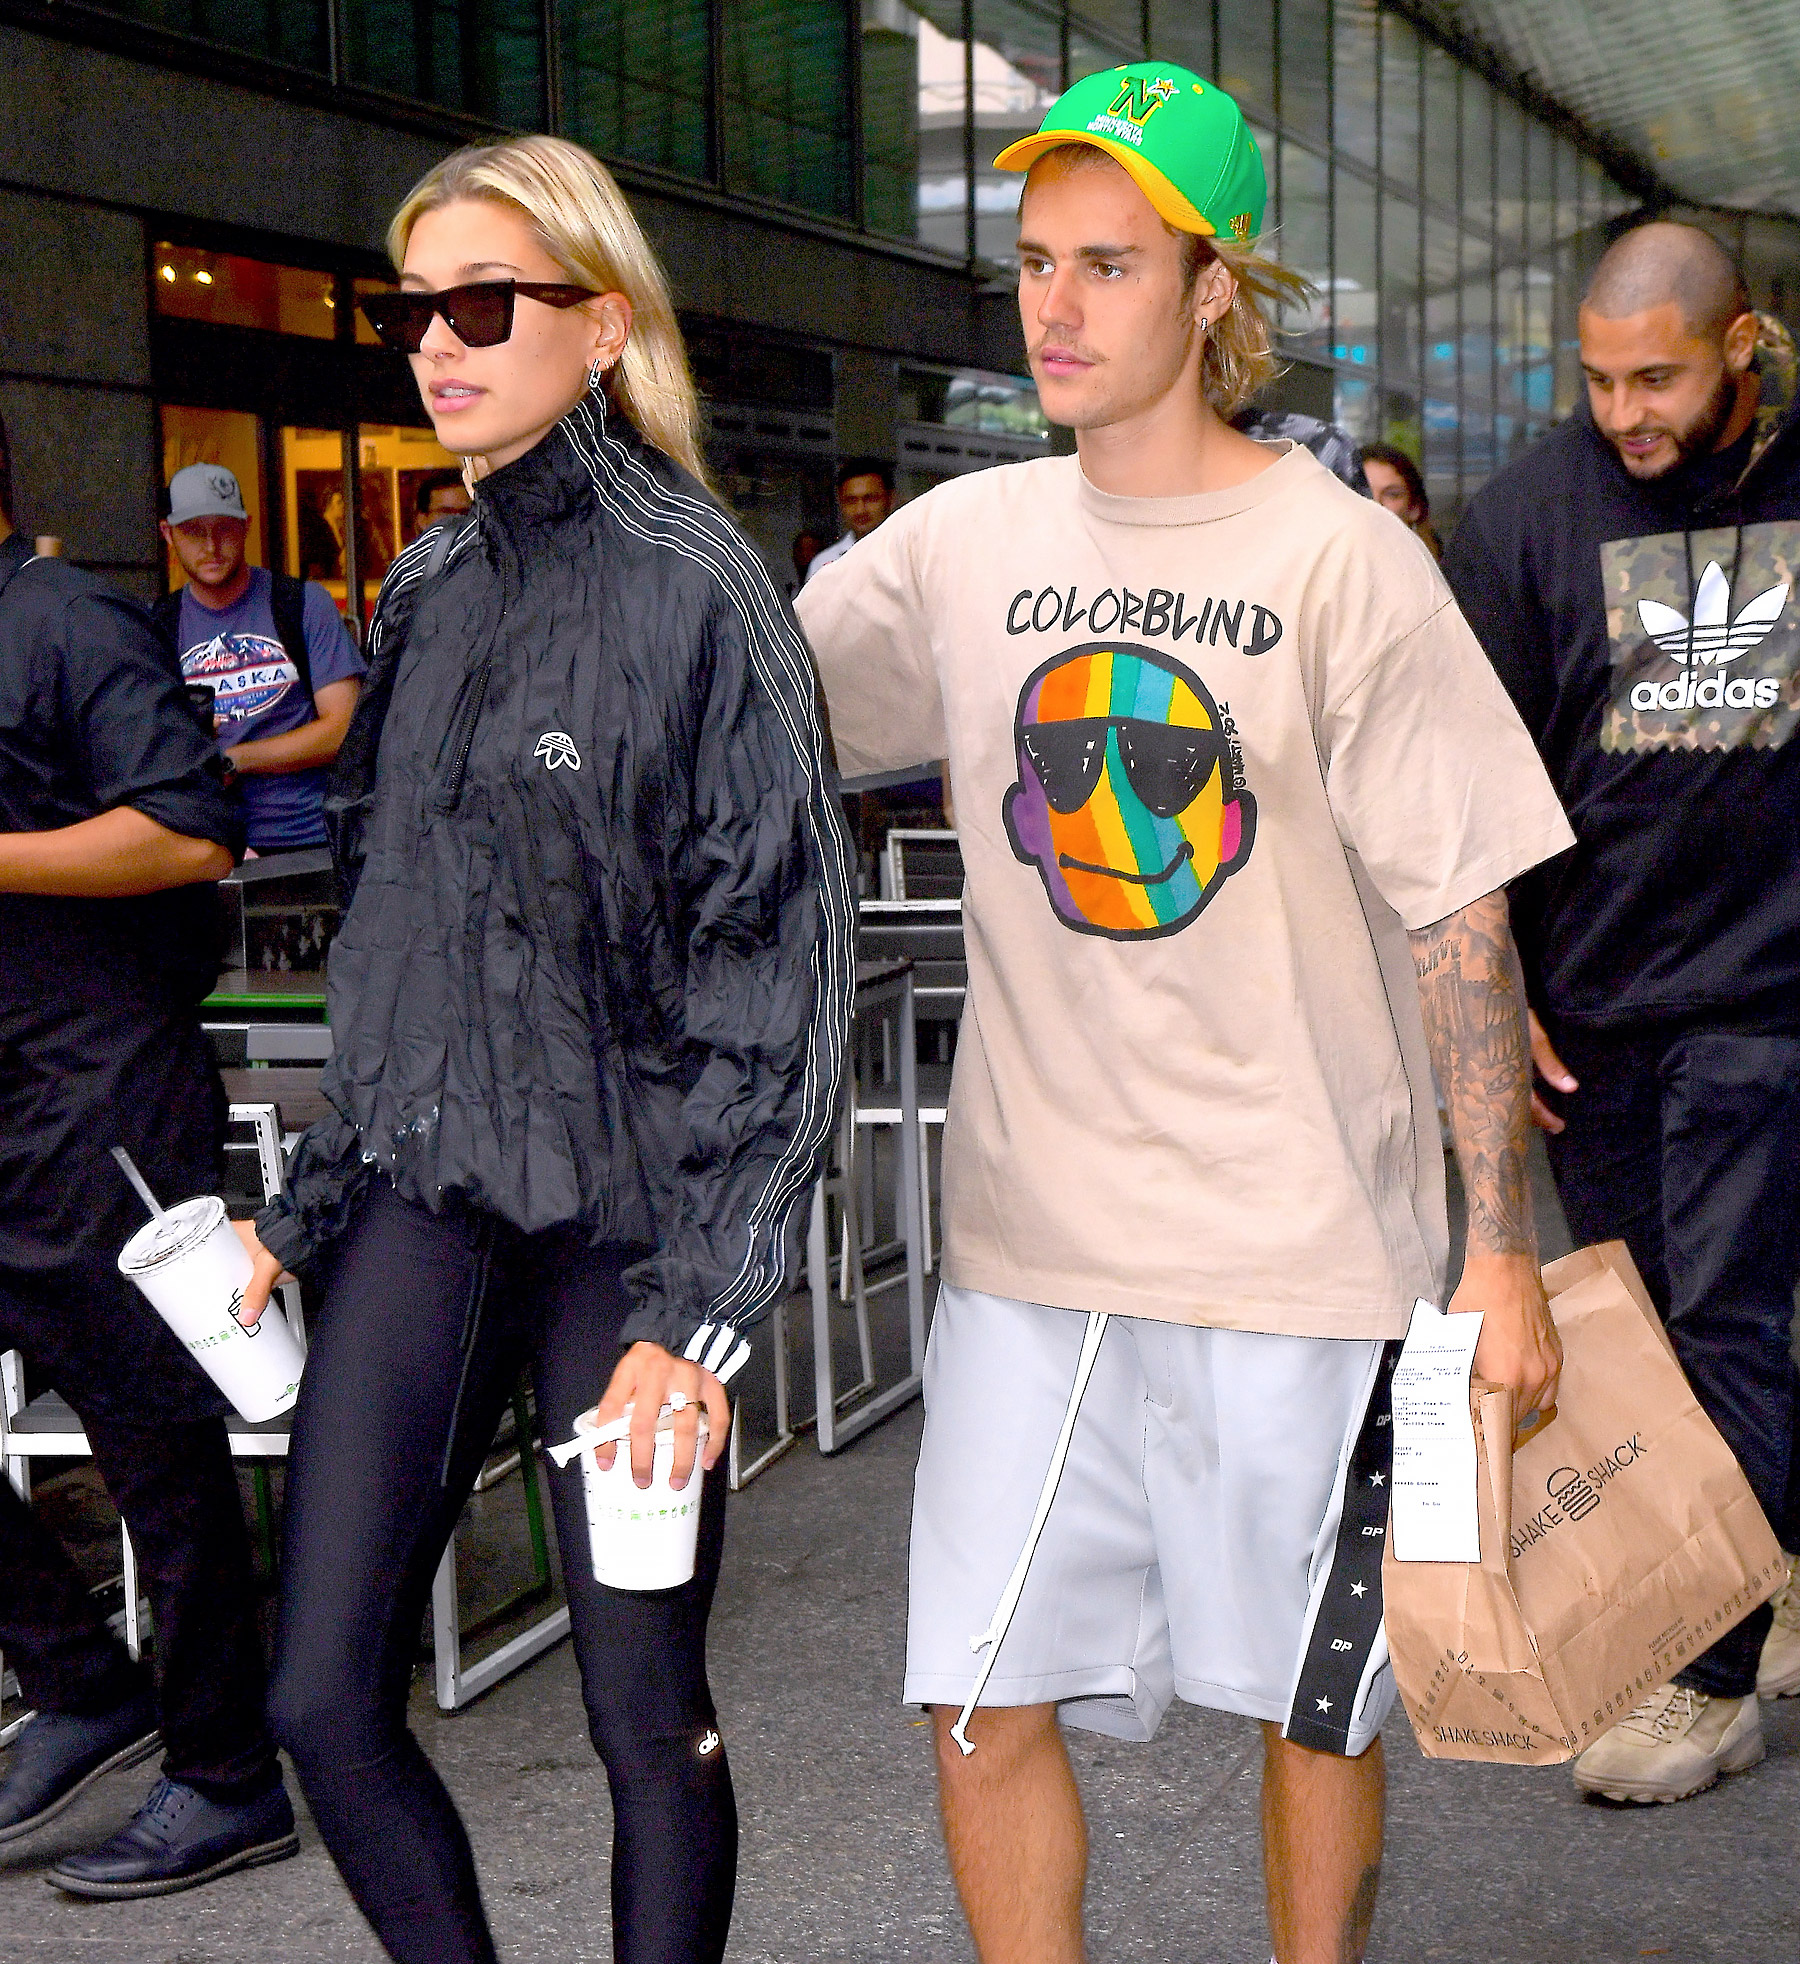 Justin Bieber And Hailey Baldwin Pack On The PDA While Getting Burgers And Milkshakes In New York